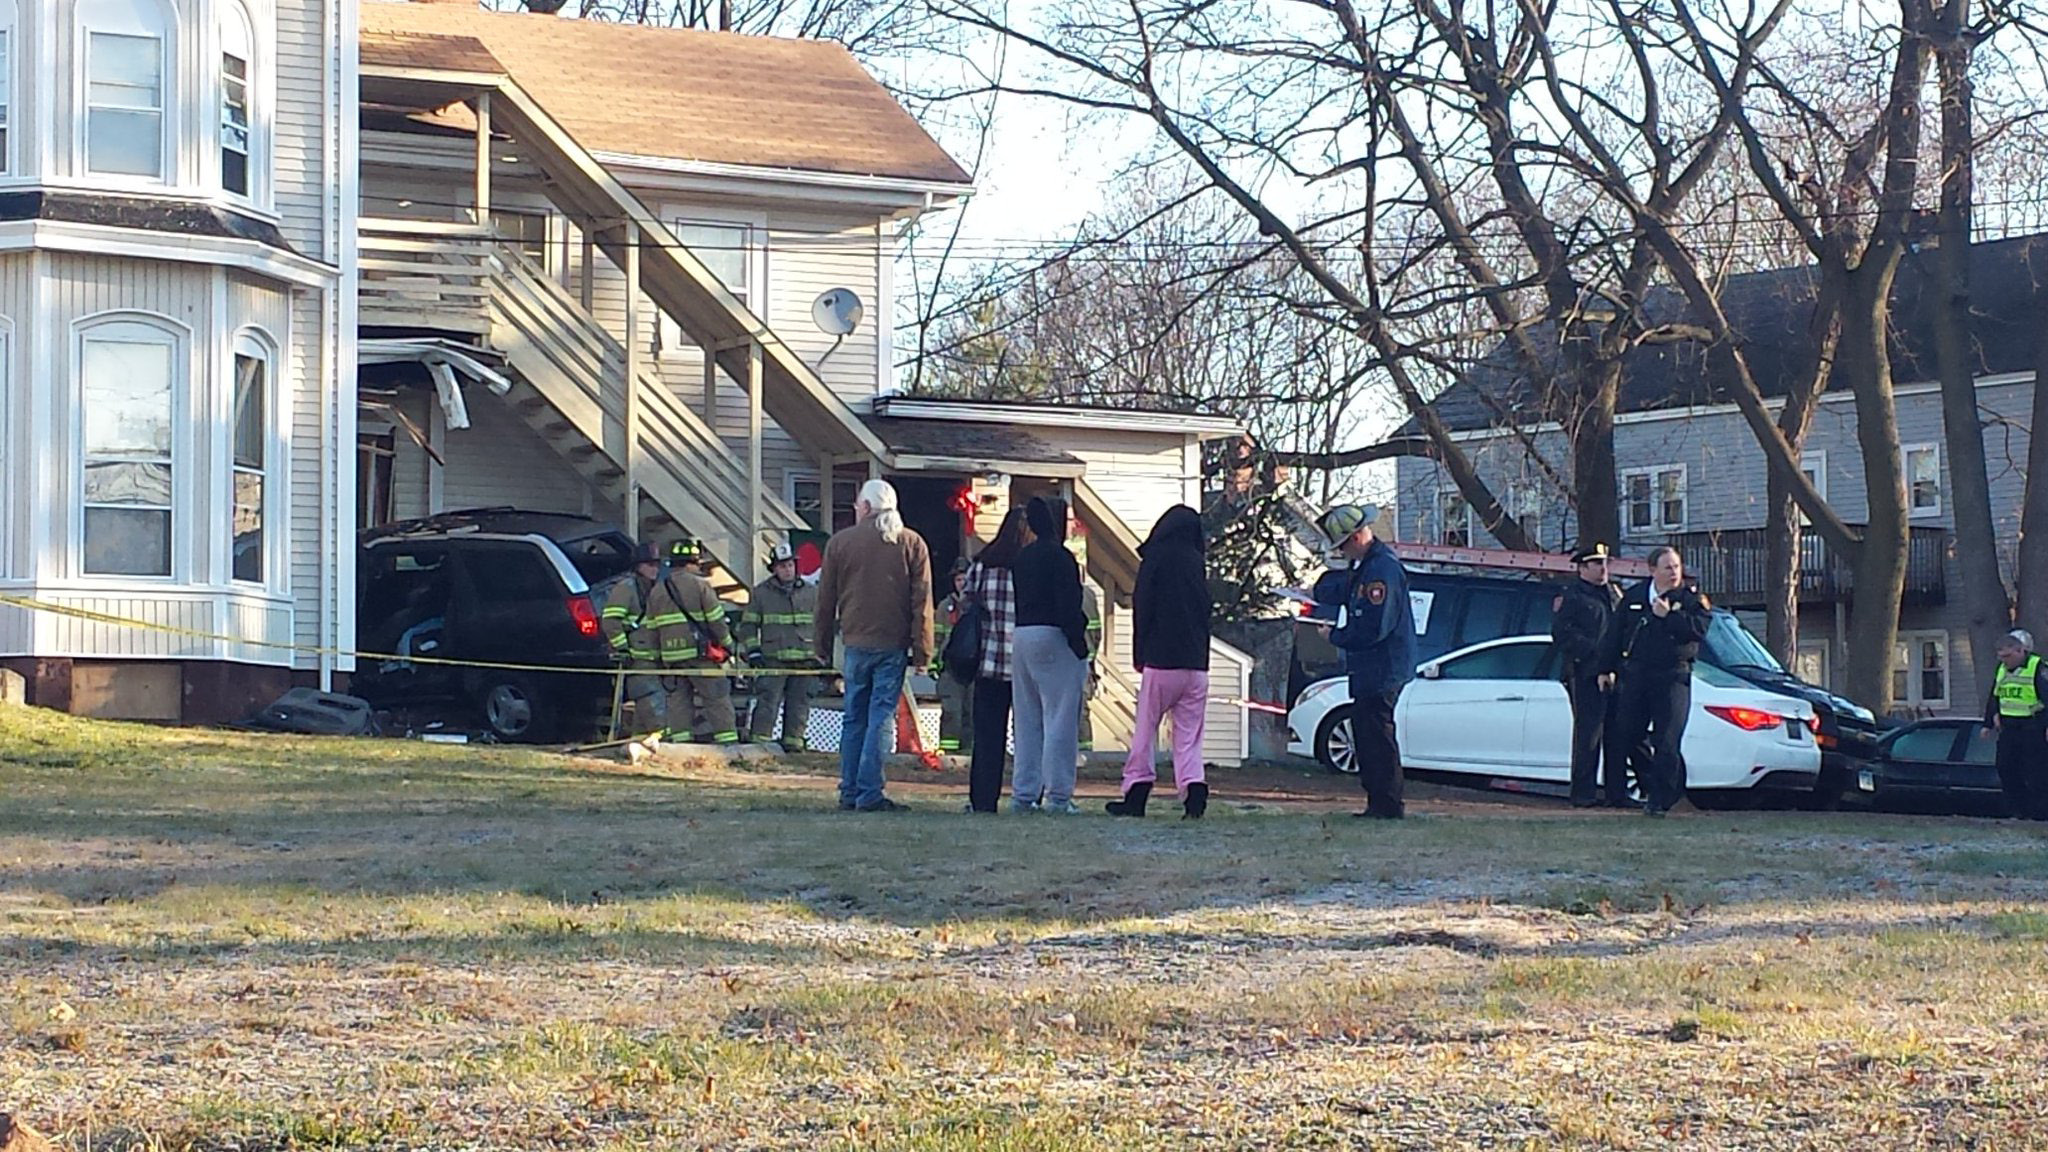 Emergency crews responded to the intersection of Broad and Wall streets Tuesday morning after a car crashed into a home. | Lauren Sievert, Record-Journal